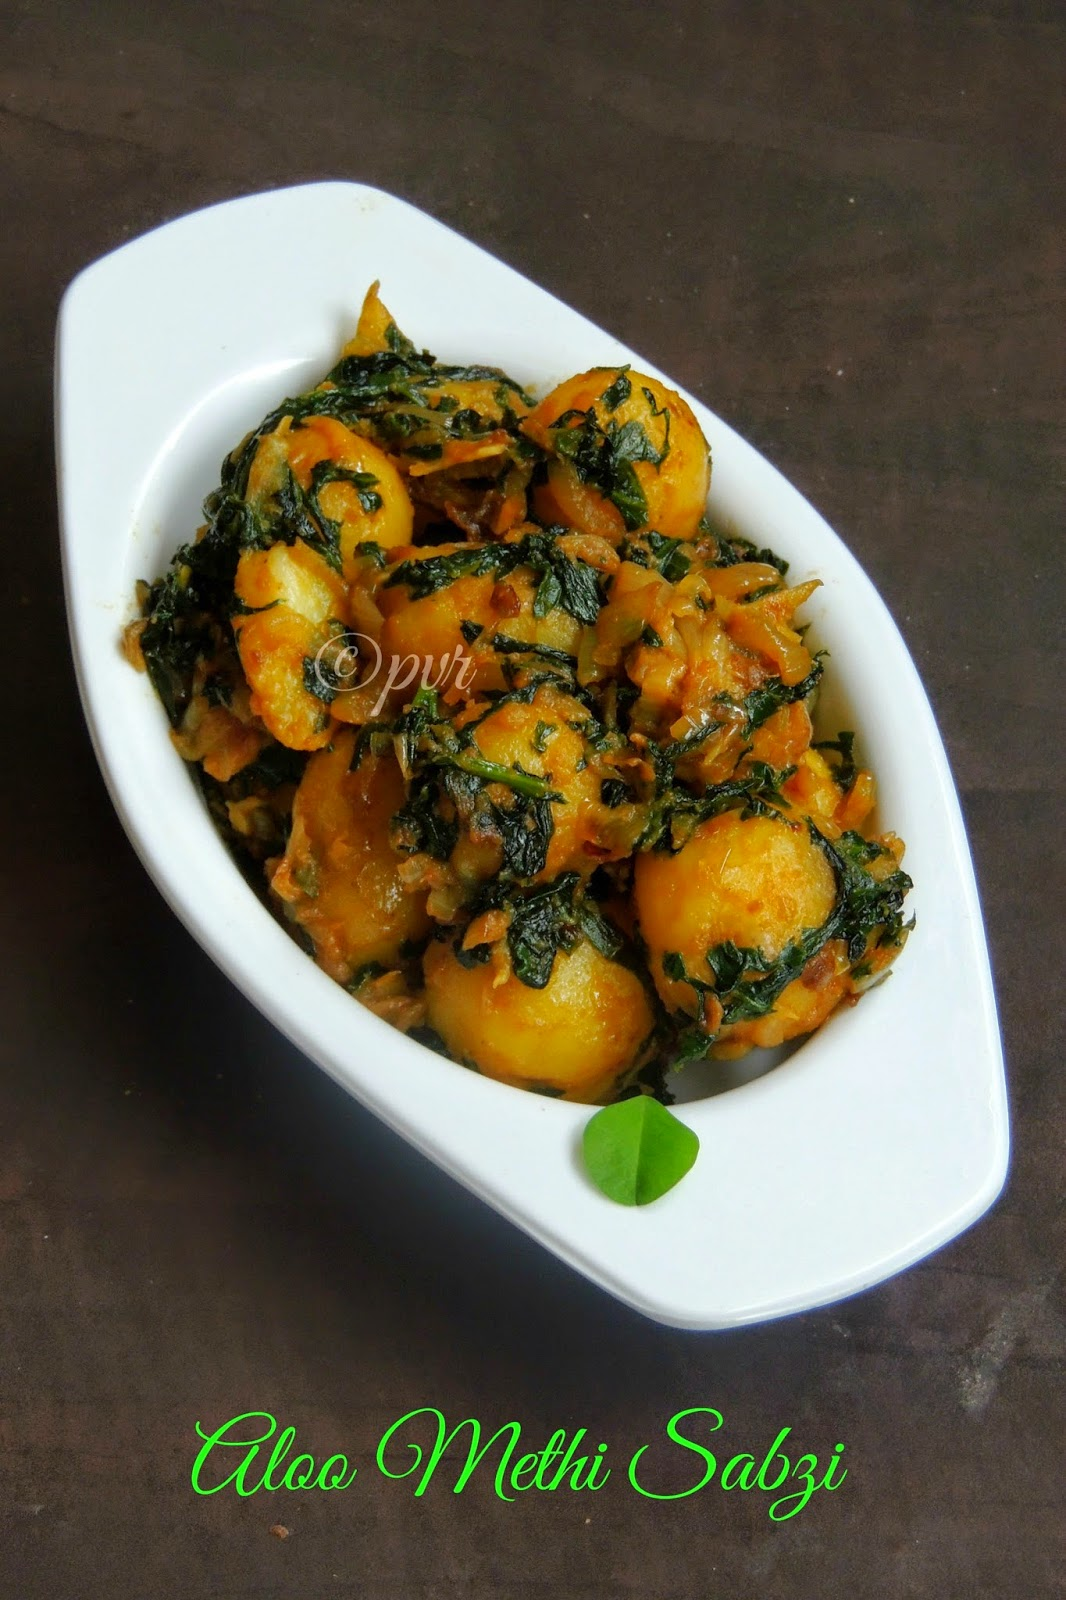 Aloo methi Sabzi, Potato fenugreek leaves curry,Vegan potato fenugreek leaves curry